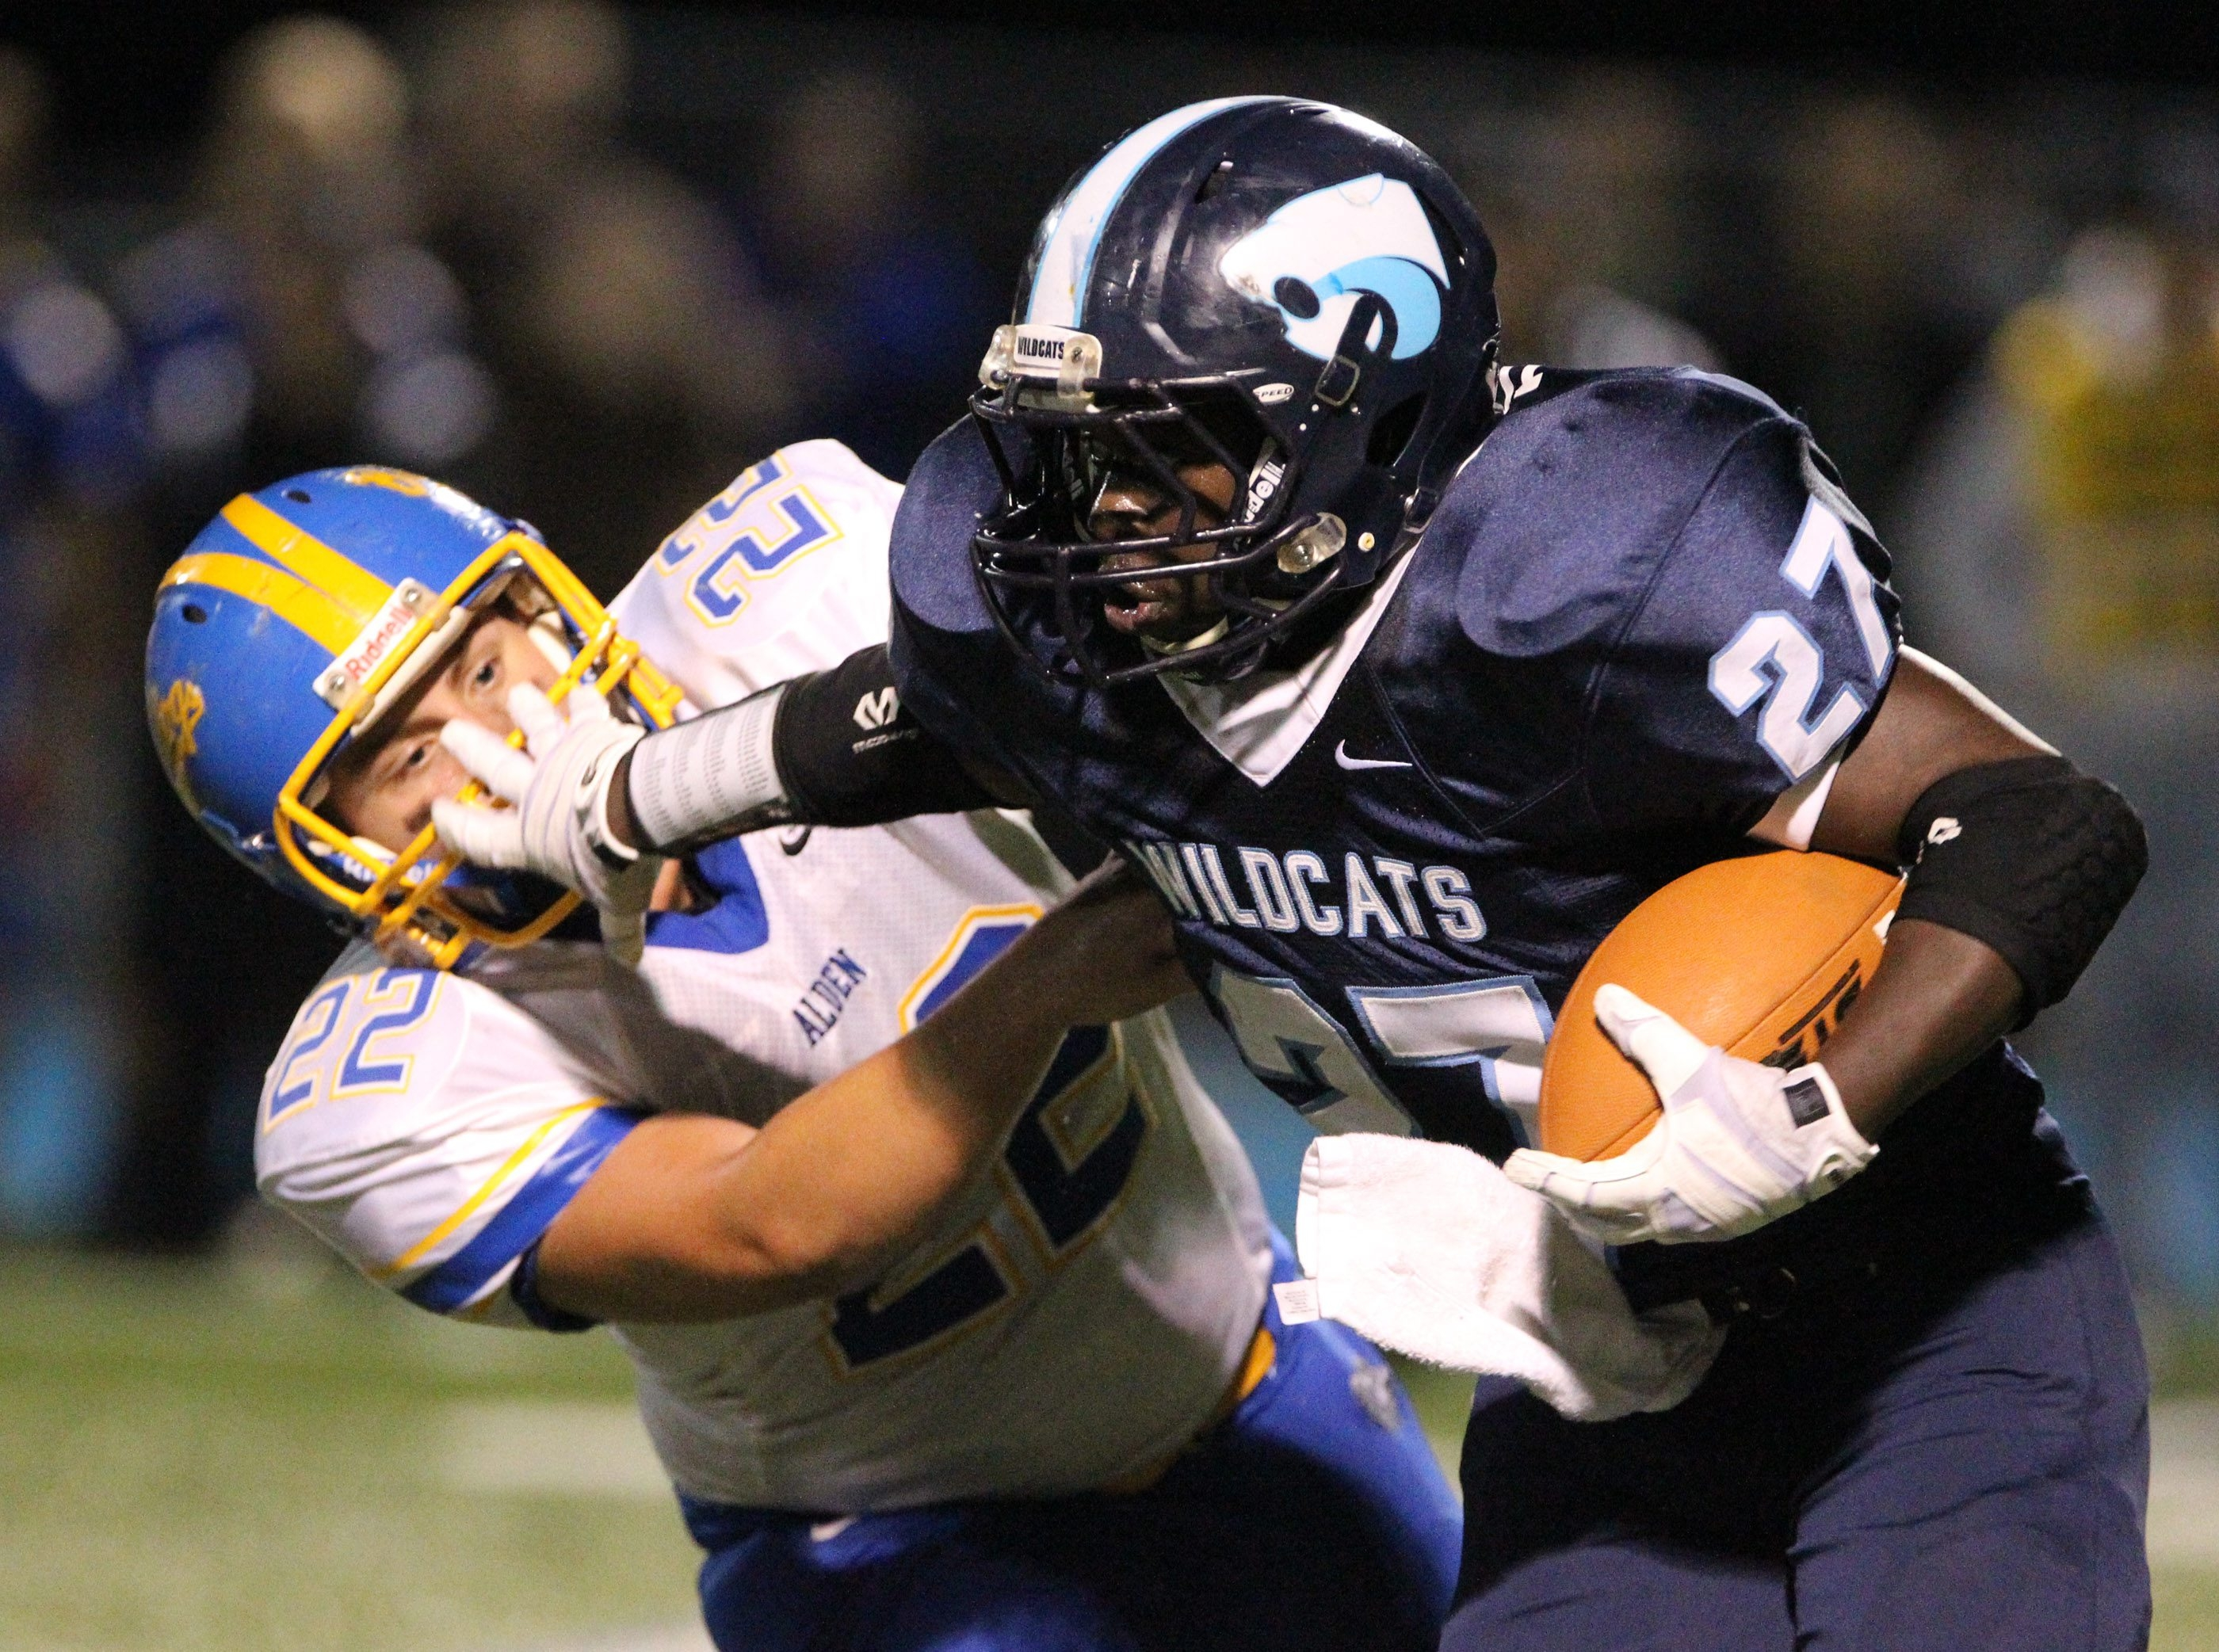 Depew's Rodney Turner, coming off a five touchdown game last week, looks to lead the Wildcats past rival Lancaster. A win would be Depew's fourth in a row.